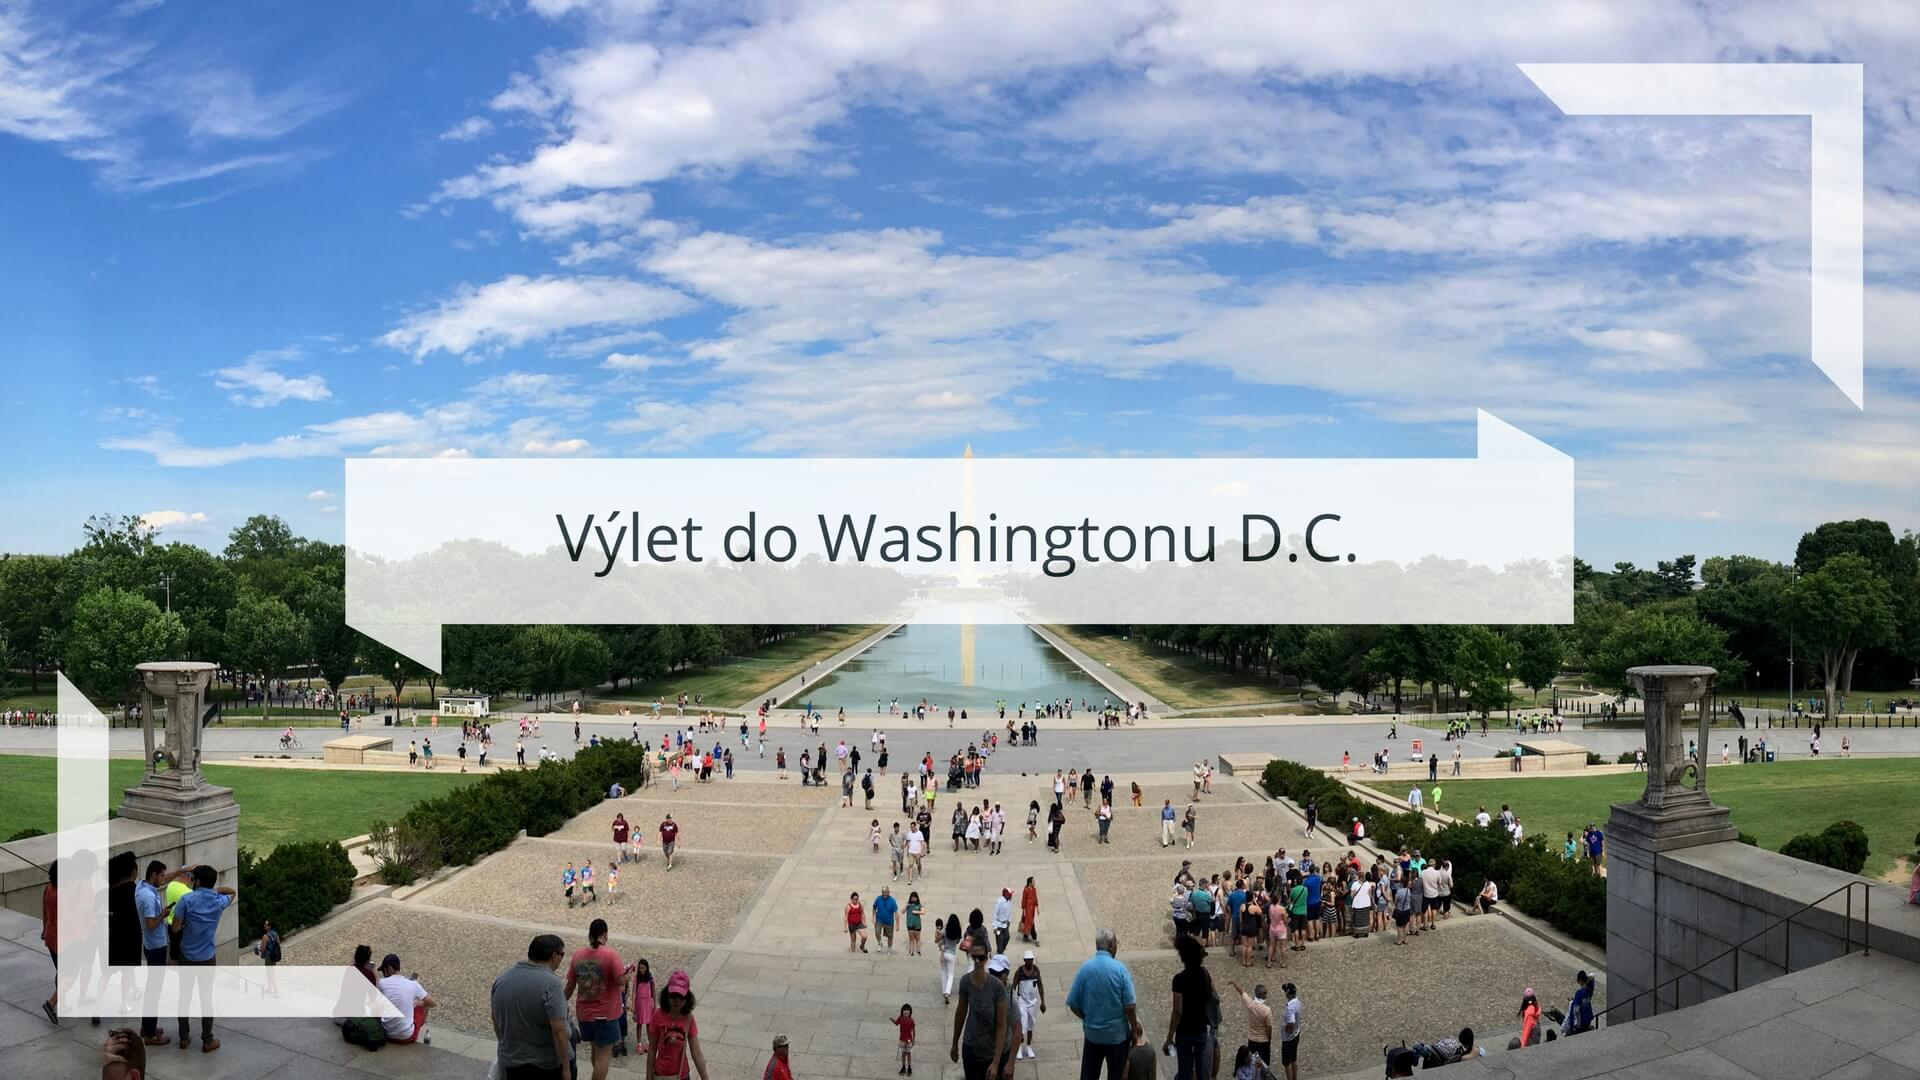 Výlet do Washingtonu D.C